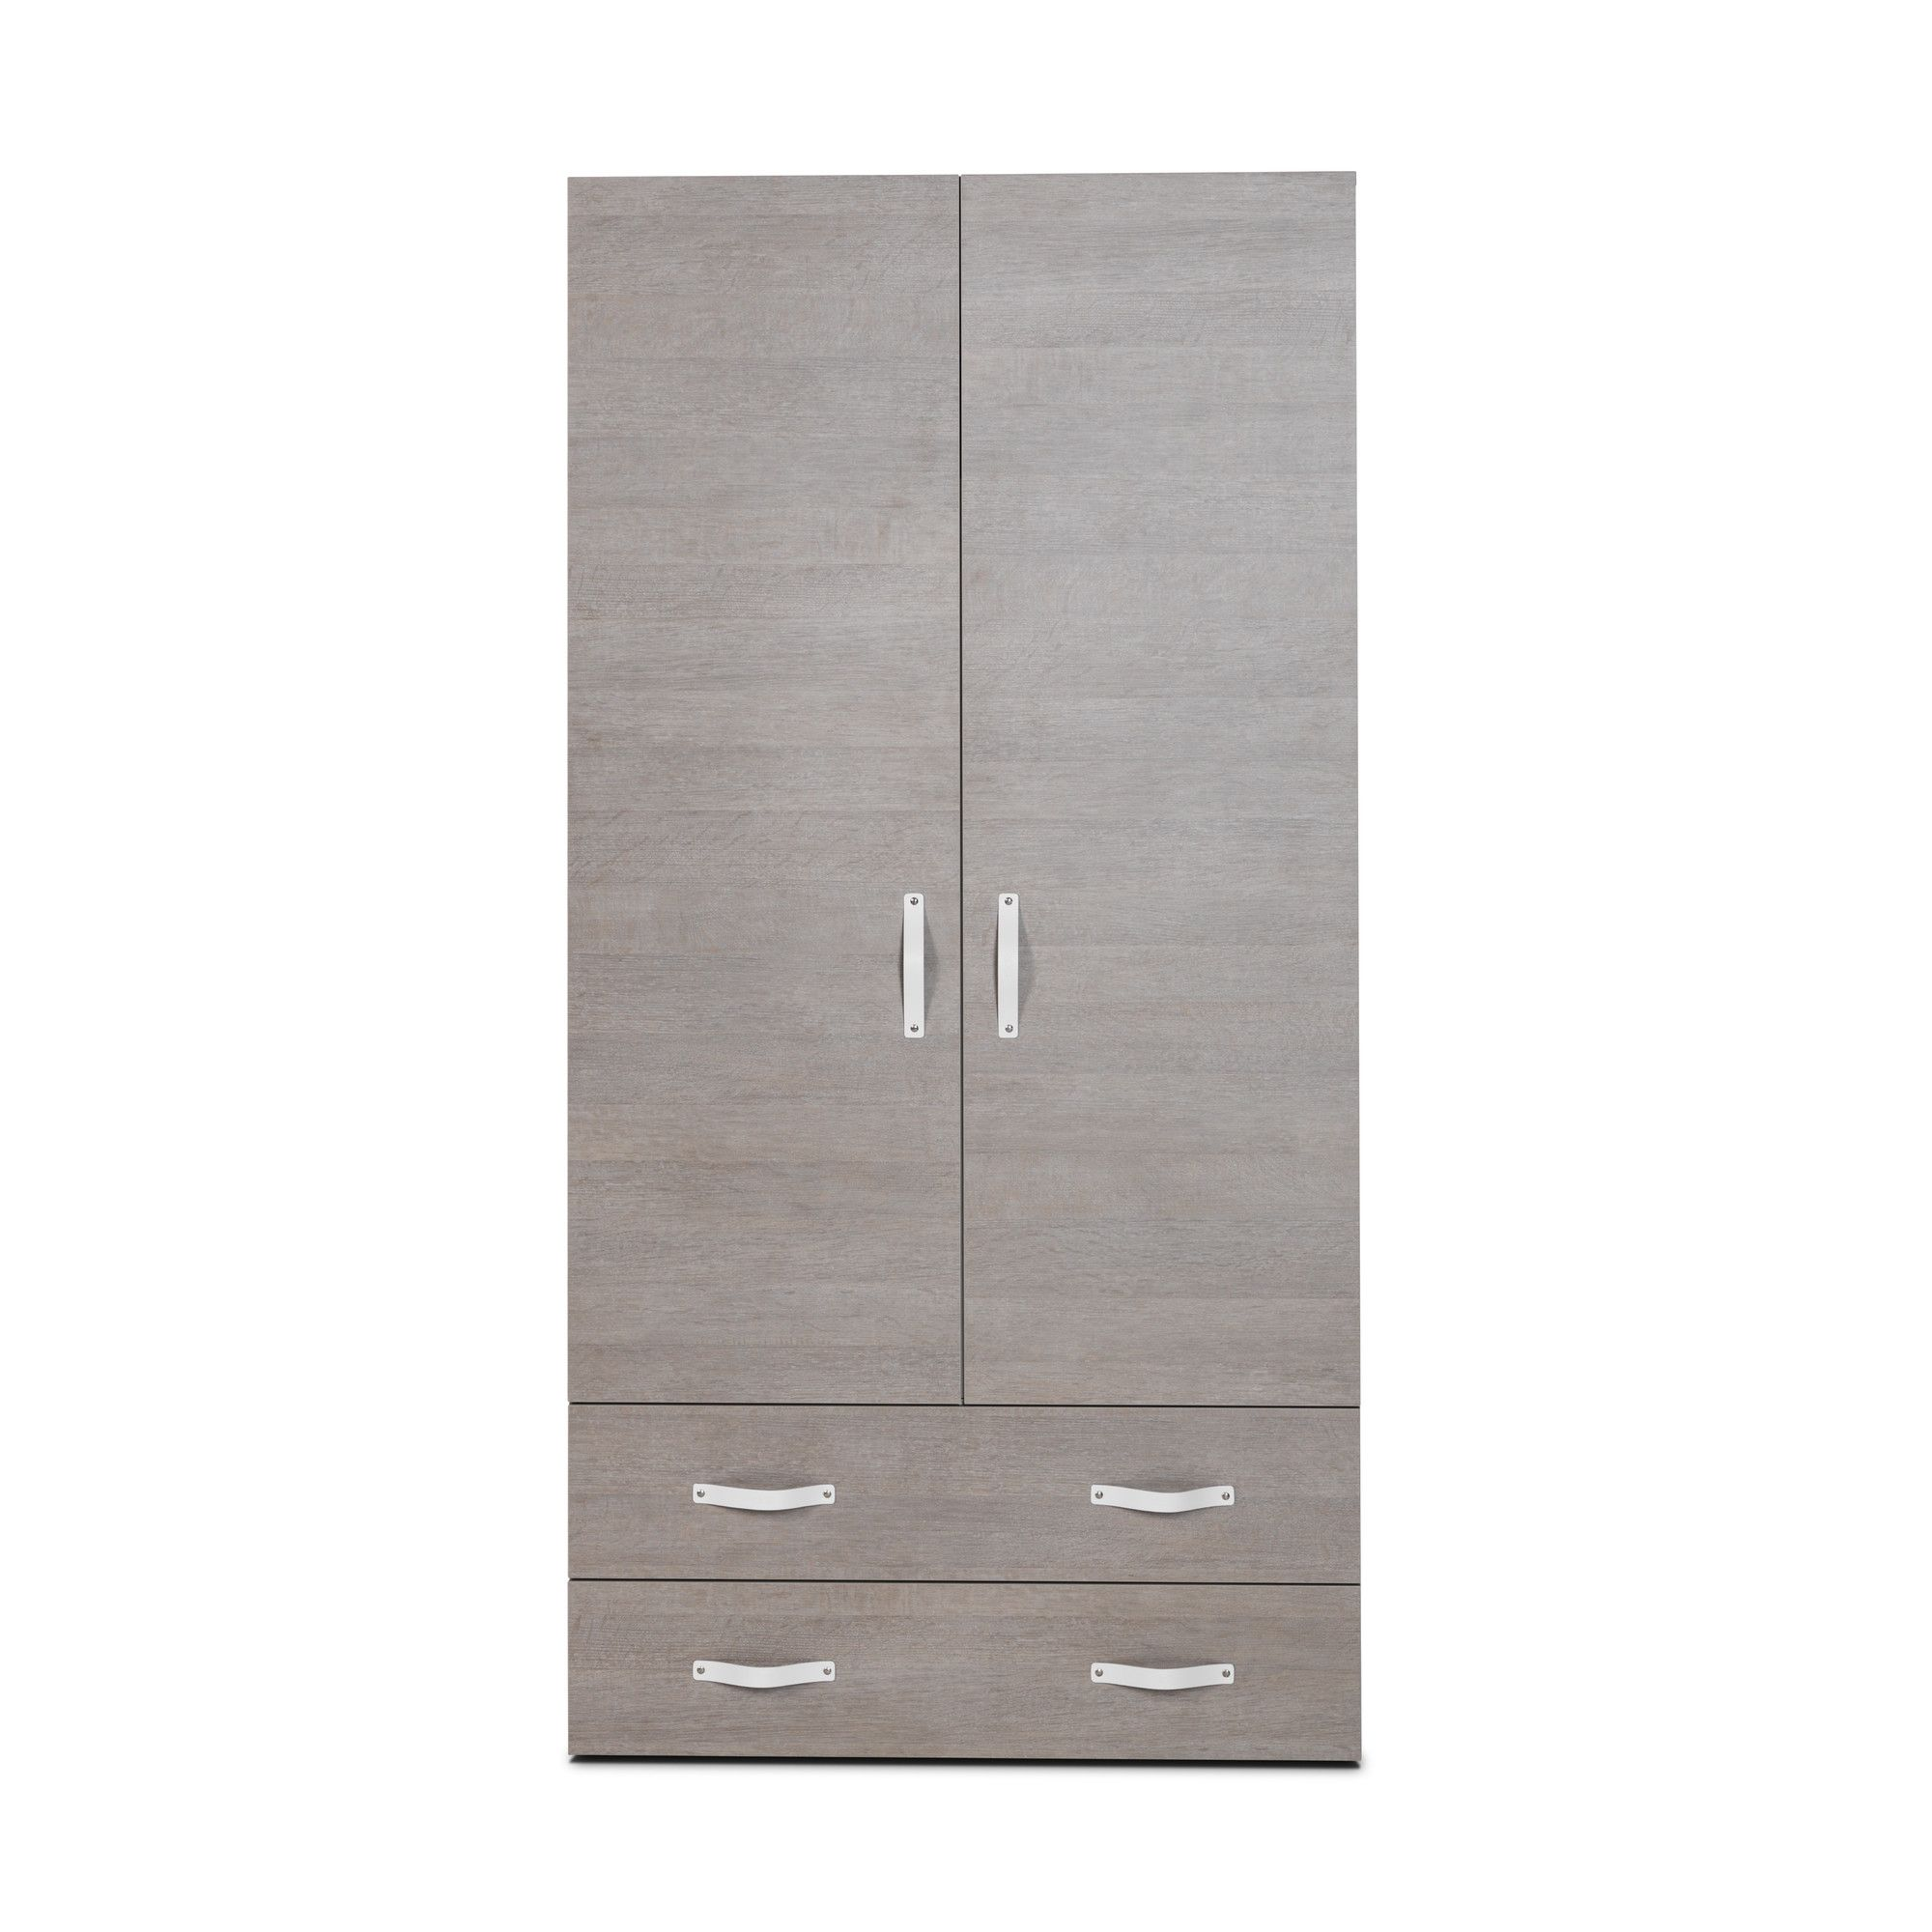 Didit Two-Drawer Wardrobe - Riverside Oak Light at Tesco Direct